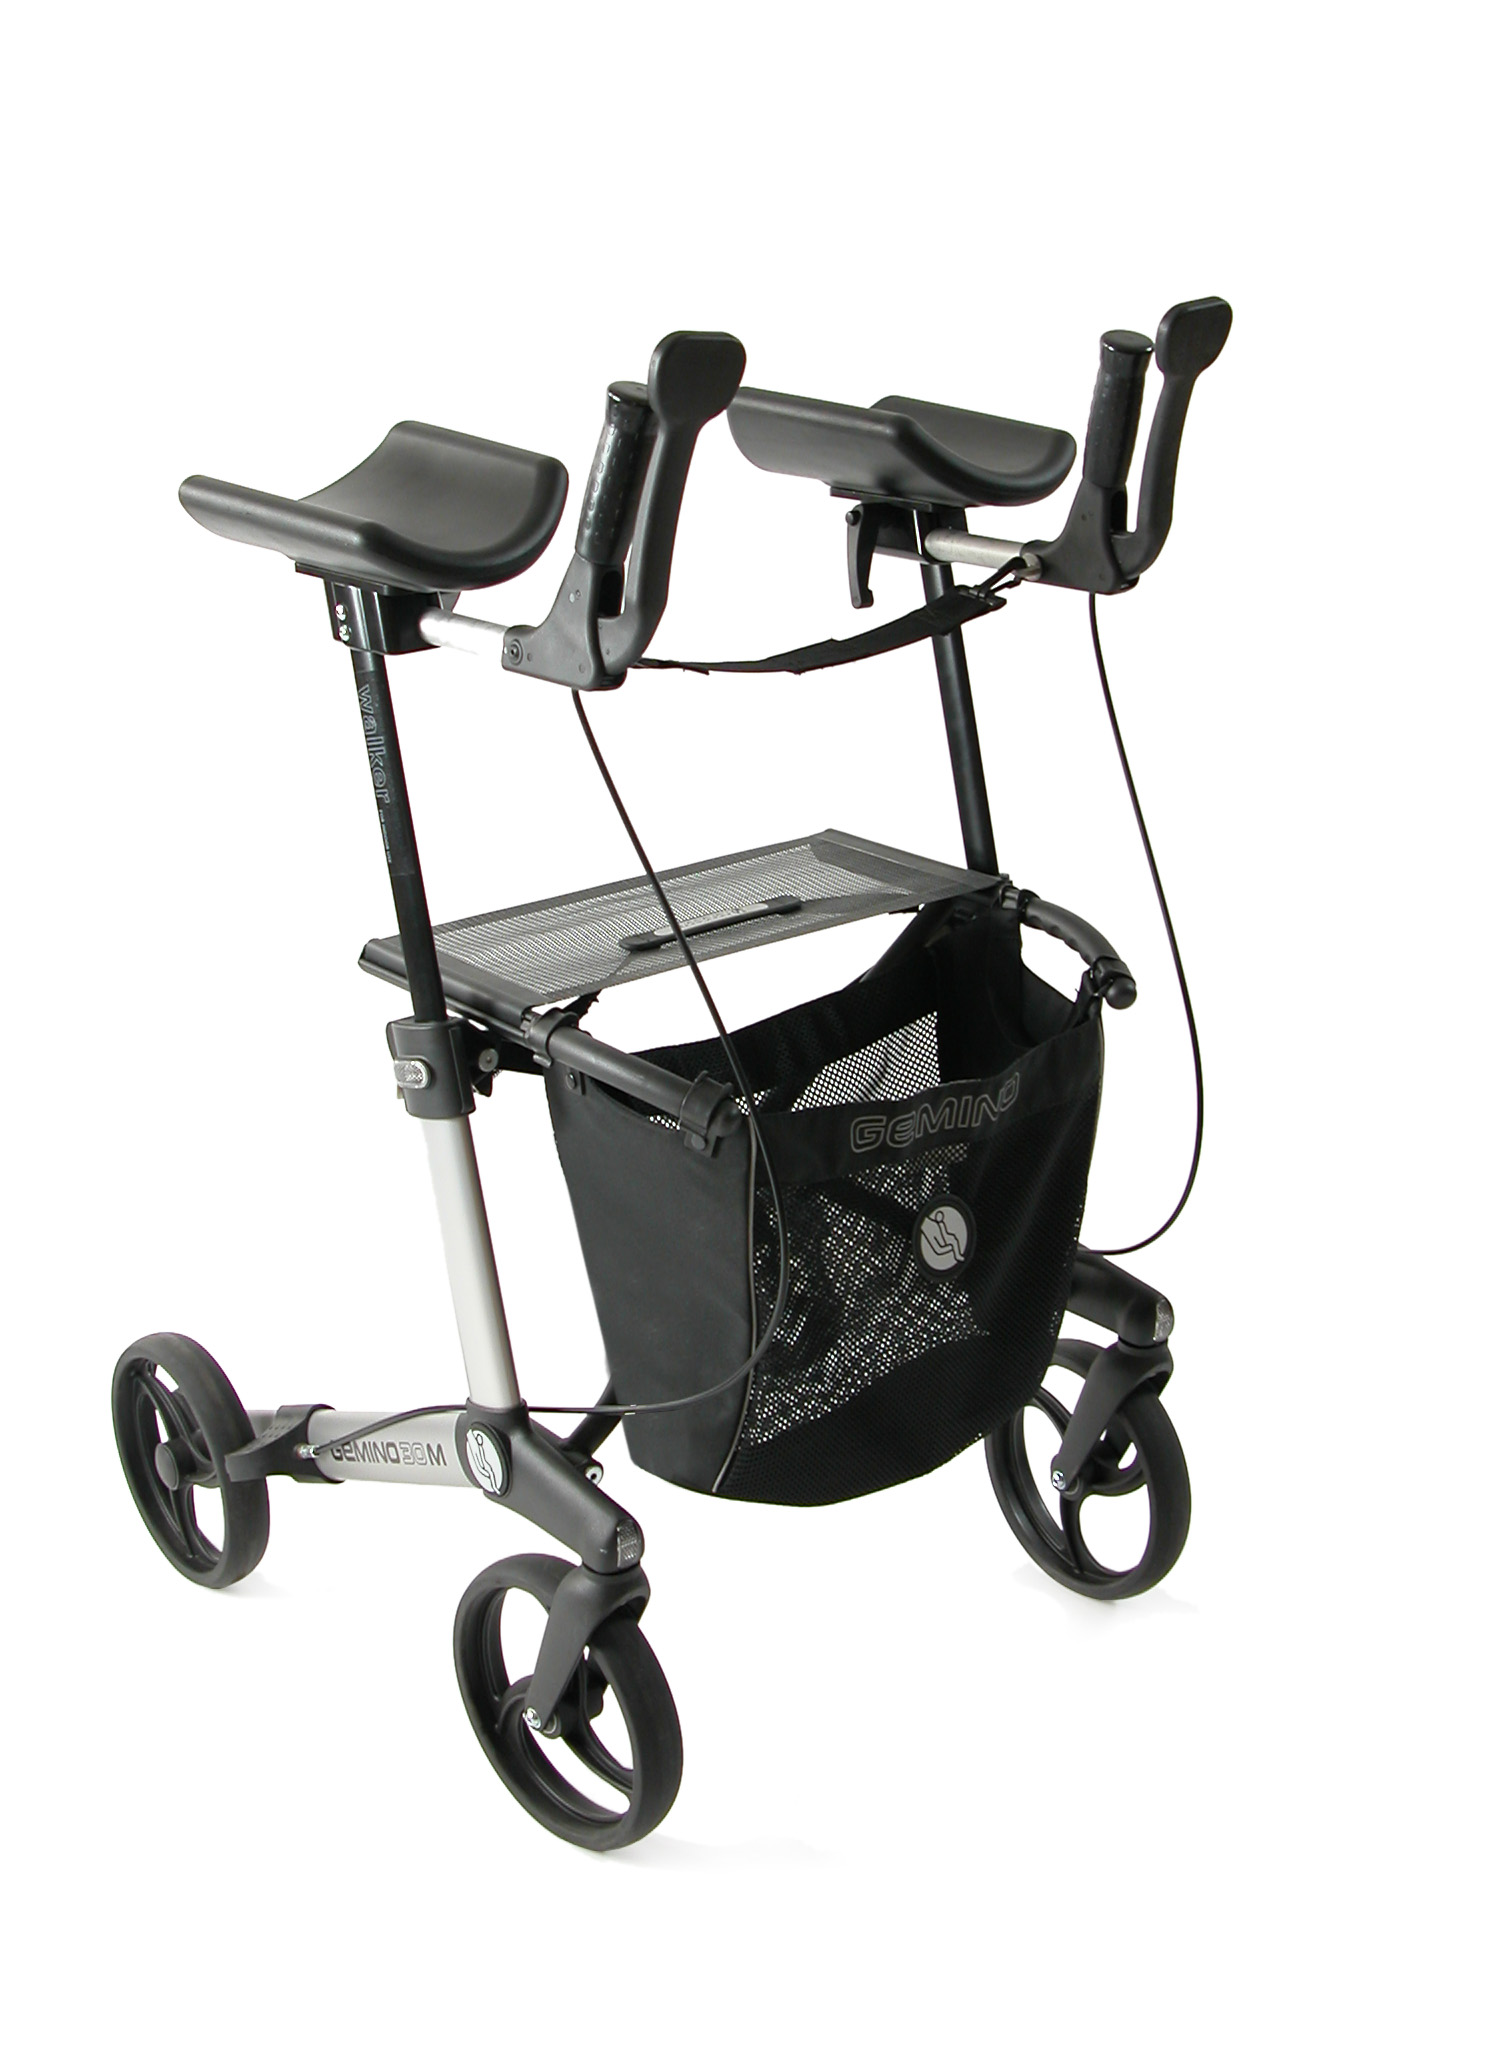 Gemino 30 Walker rollator van Sunrise Medical in zilver